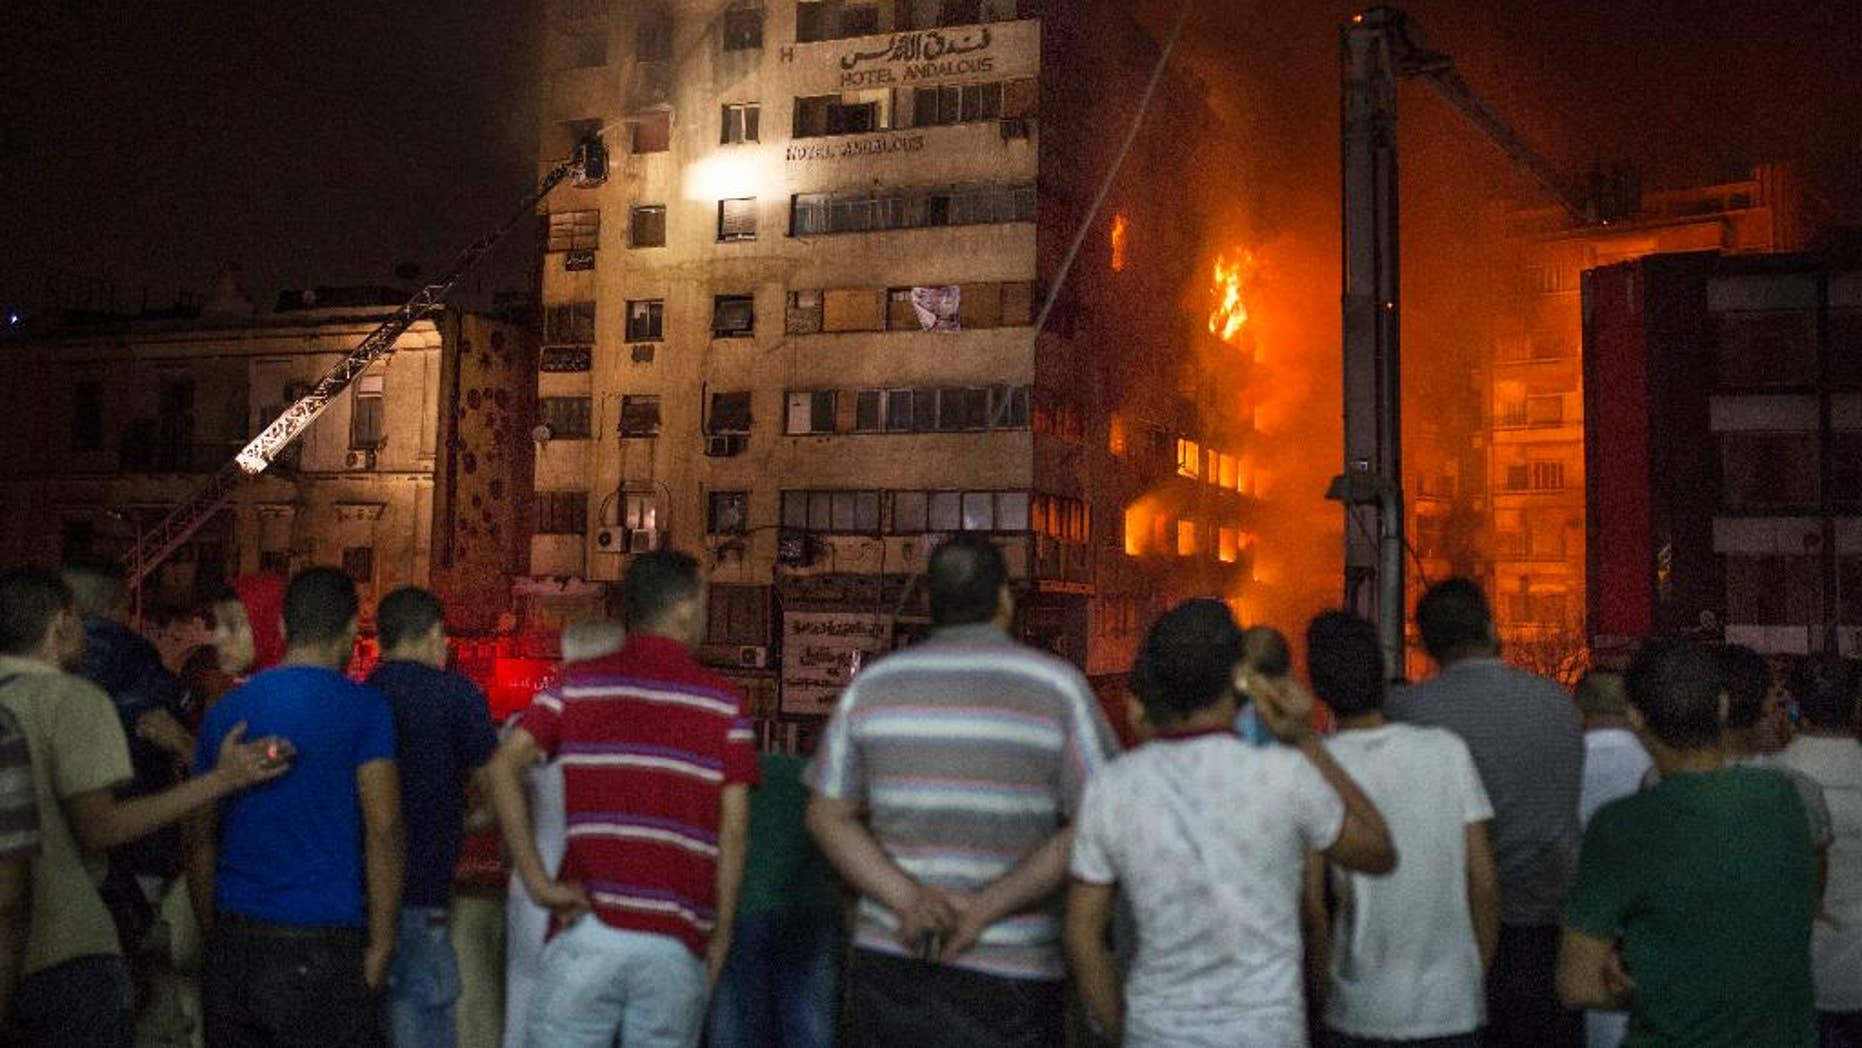 People look at a fire that erupted inside a six-story hotel called Andalusia in the populous Ataba neighborhood in Cairo, Egypt, Monday, May 9, 2016. A massive fire erupted early hours Monday morning in a busy low-price commercial area in downtown Cairo, injuring at least 60 mostly from suffocation. There were no reports of deaths. (AP Photo/Sabry Khaled)